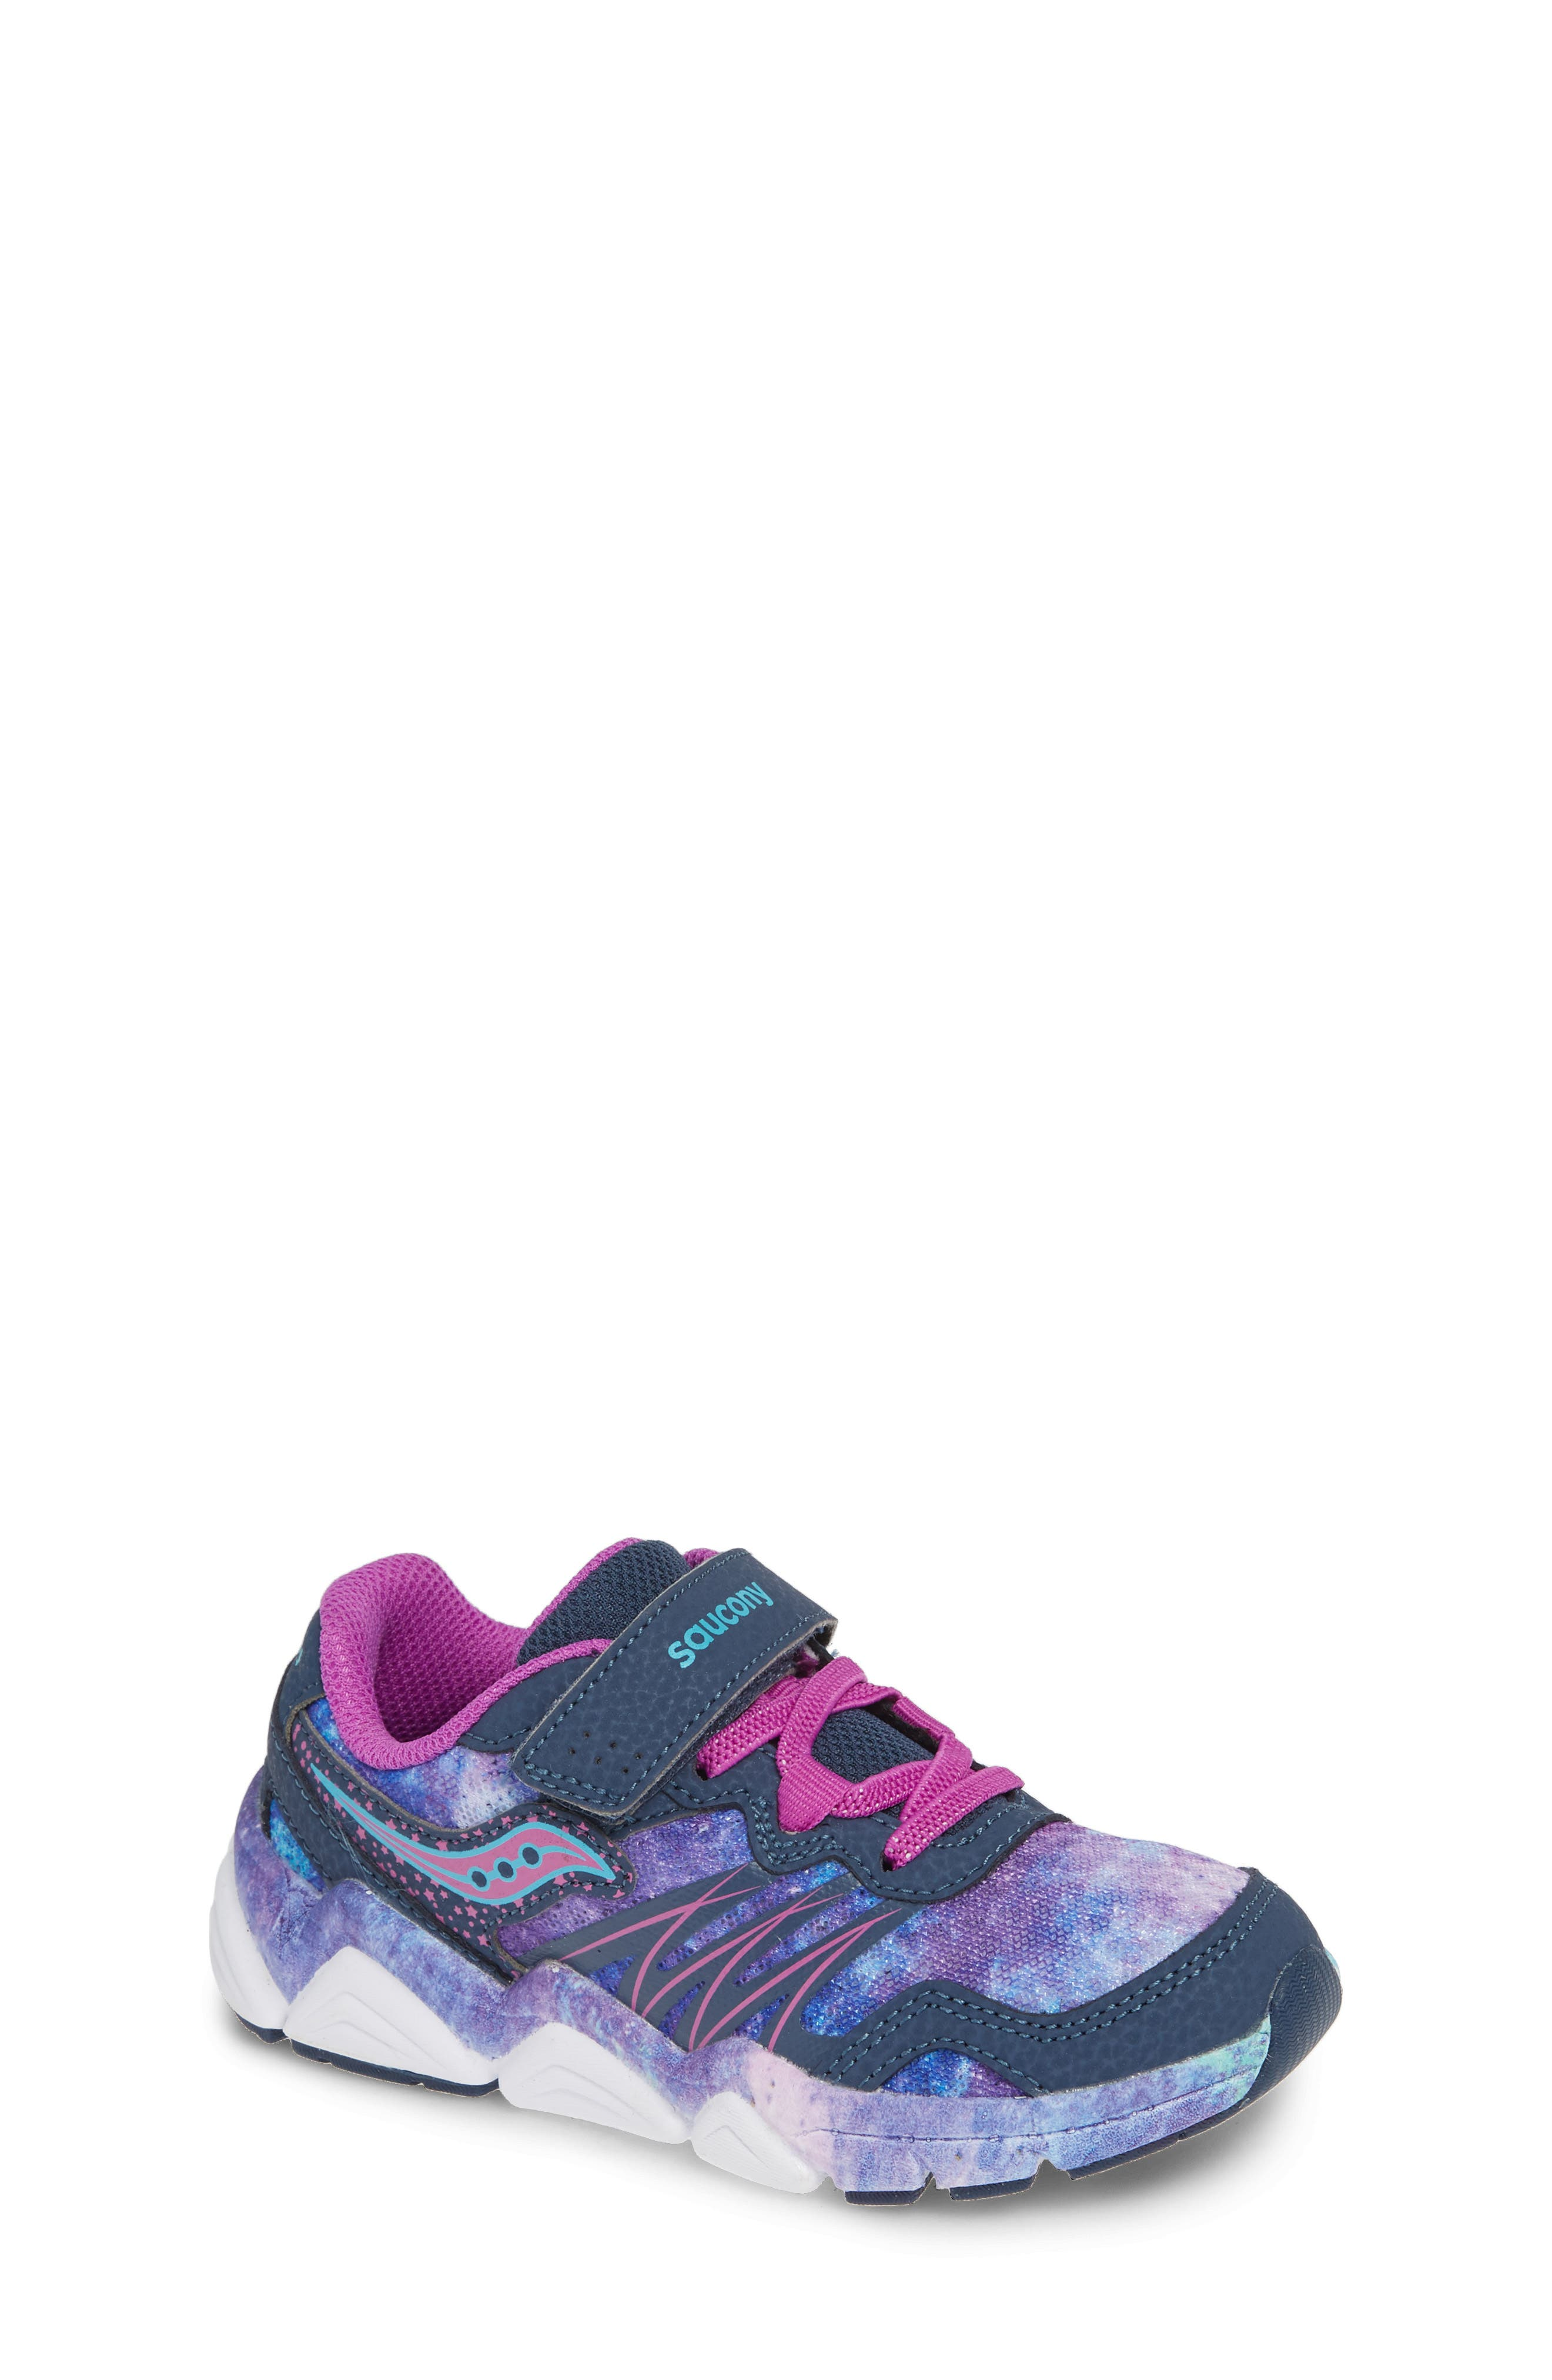 Kotaro Flash Sneaker,                         Main,                         color, PURPLE LEATHER/ MESH